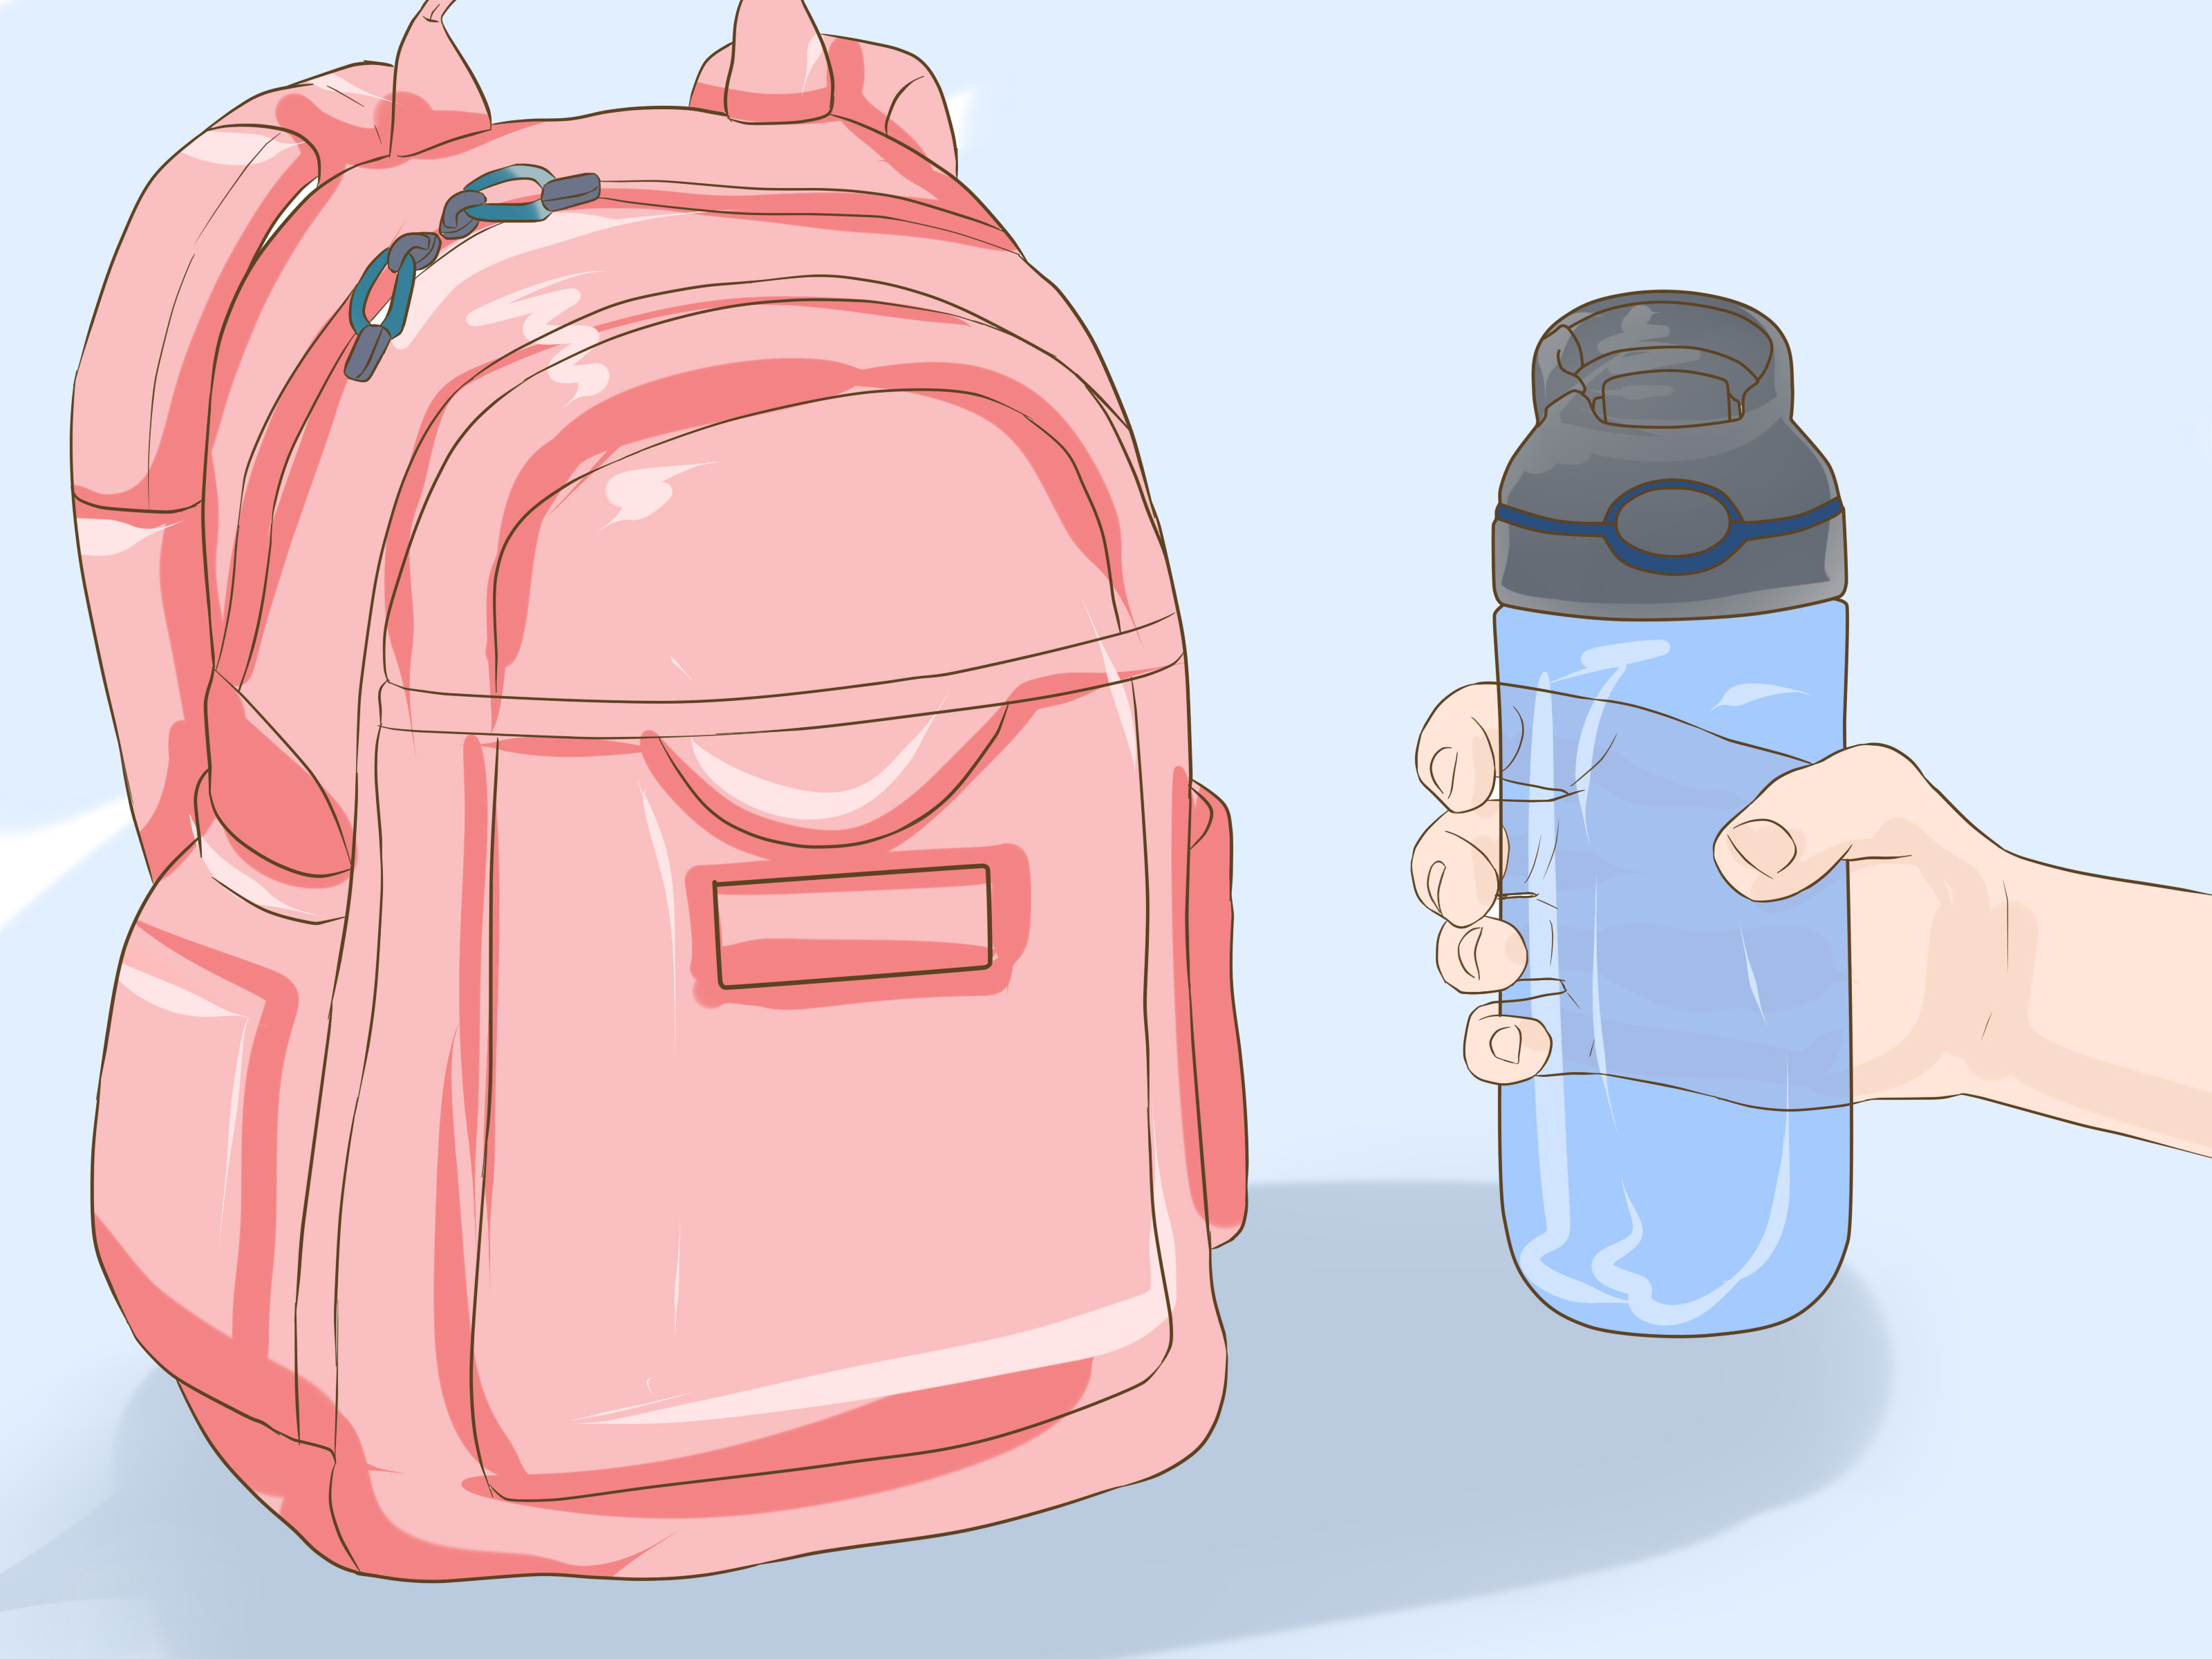 Kids pack backpack to go home clipart graphic black and white download How to Organize Your School Bag: 14 Steps - wikiHow graphic black and white download